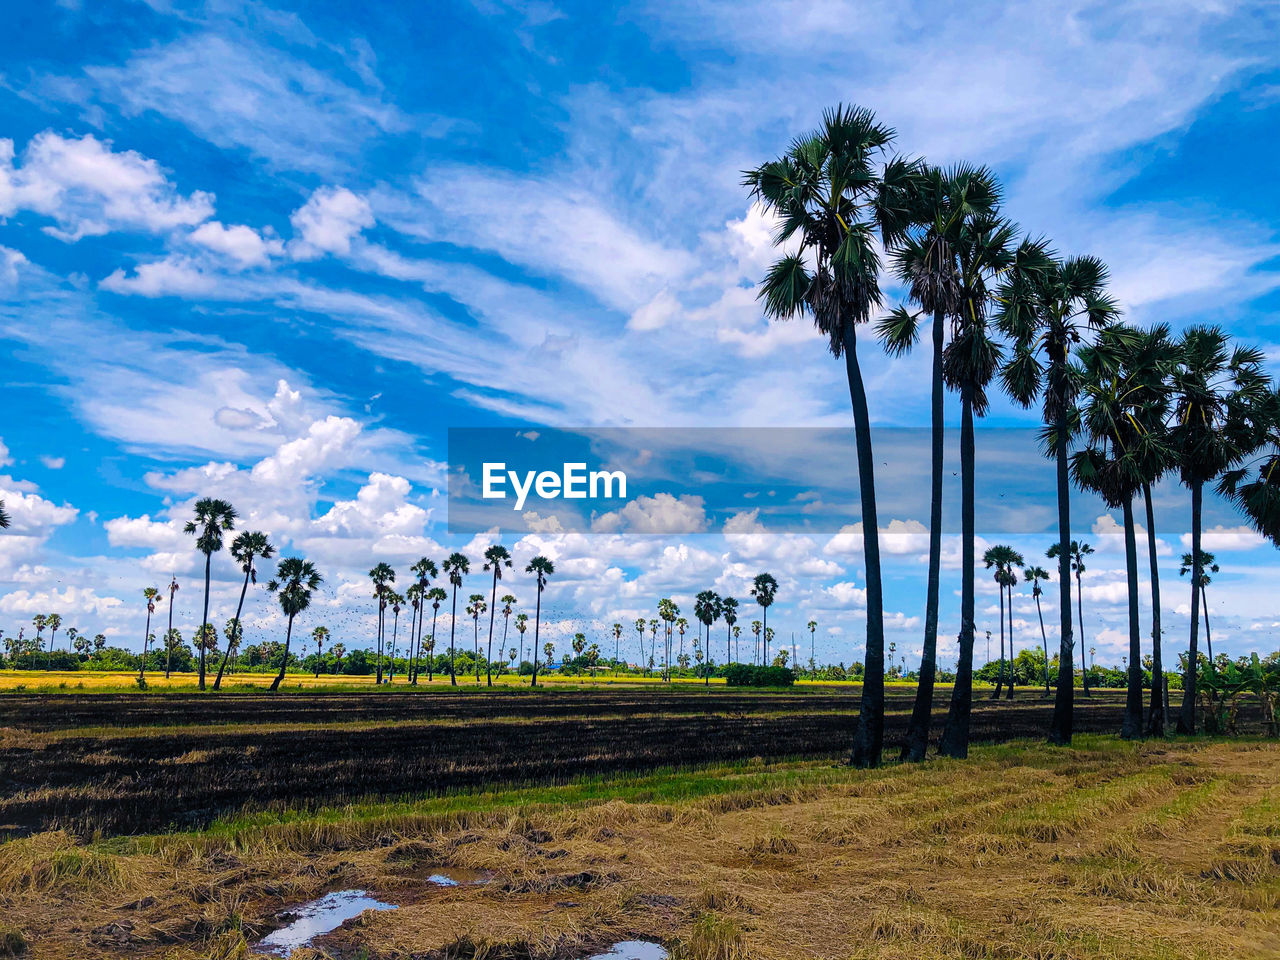 PALM TREES IN FIELD AGAINST SKY